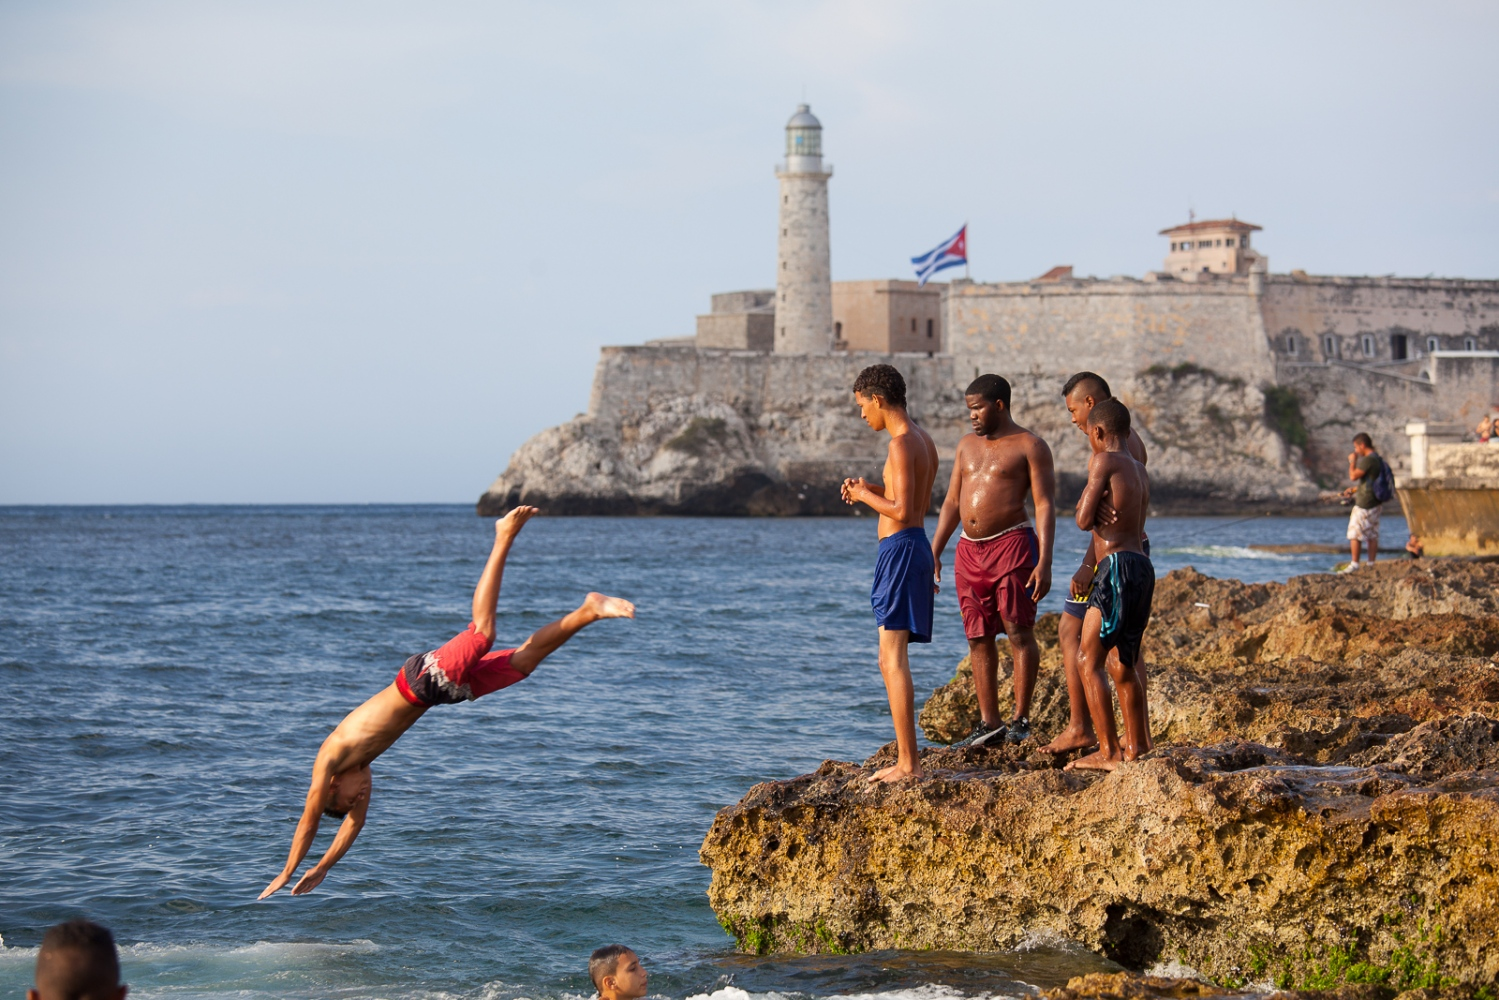 Despite having so little, kids revel in the limited freedom they have. Here, boys jump from the wall along the Malecon, with the old fort Castillo del Moro in the background.